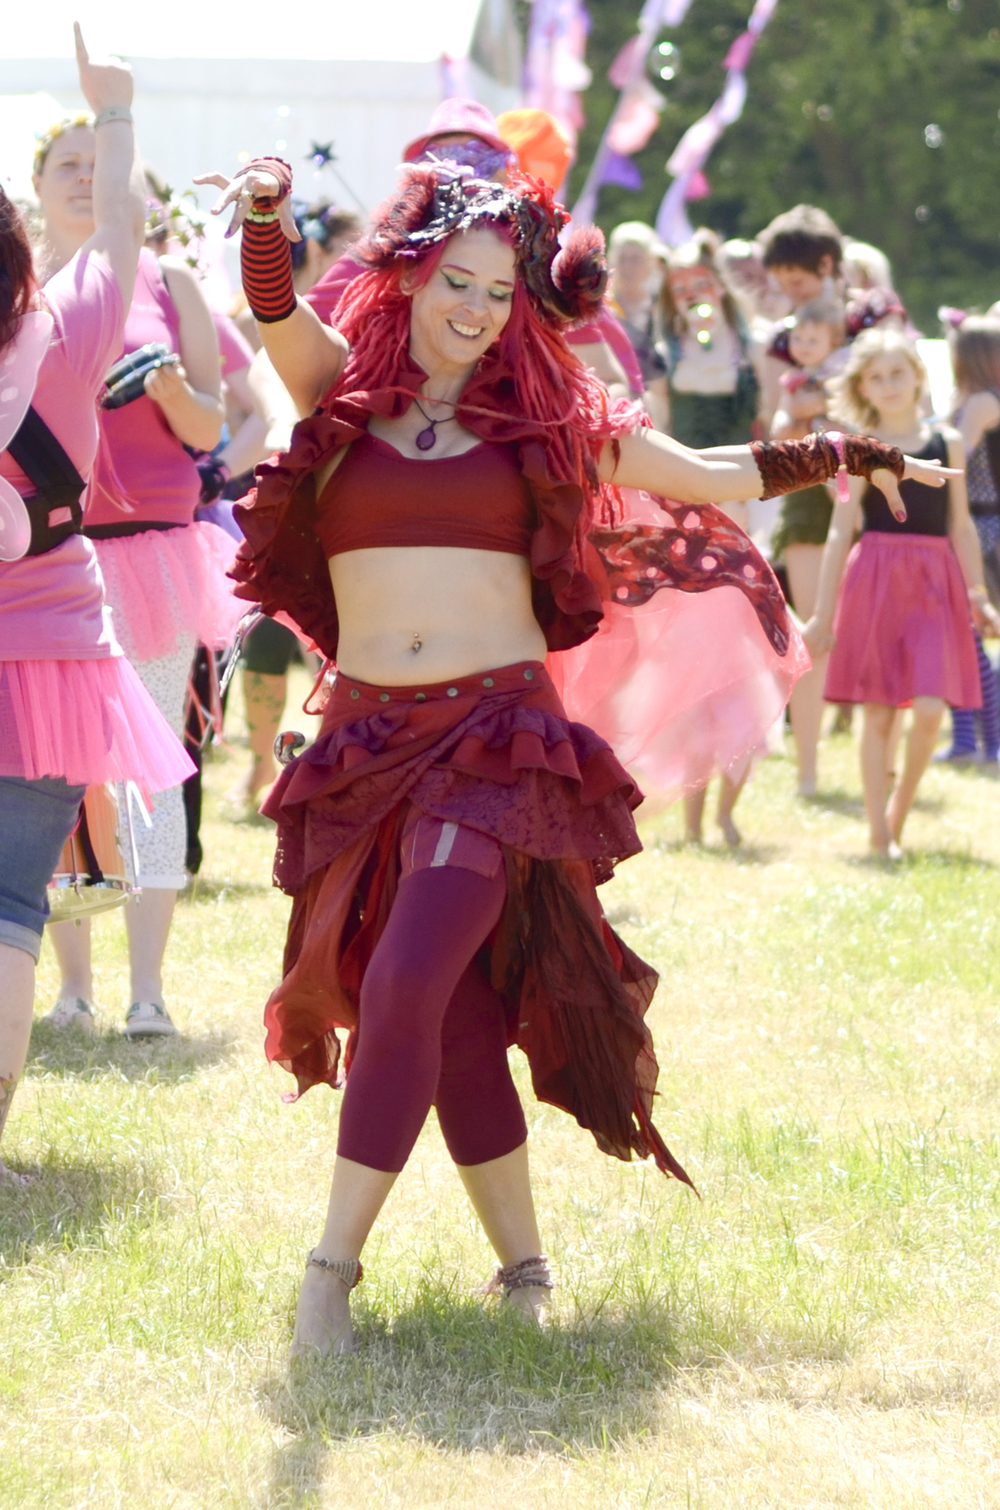 The festival's opening celebrations are such a blast! Here is the wonderful  Felicity Fairy  leading the parade.